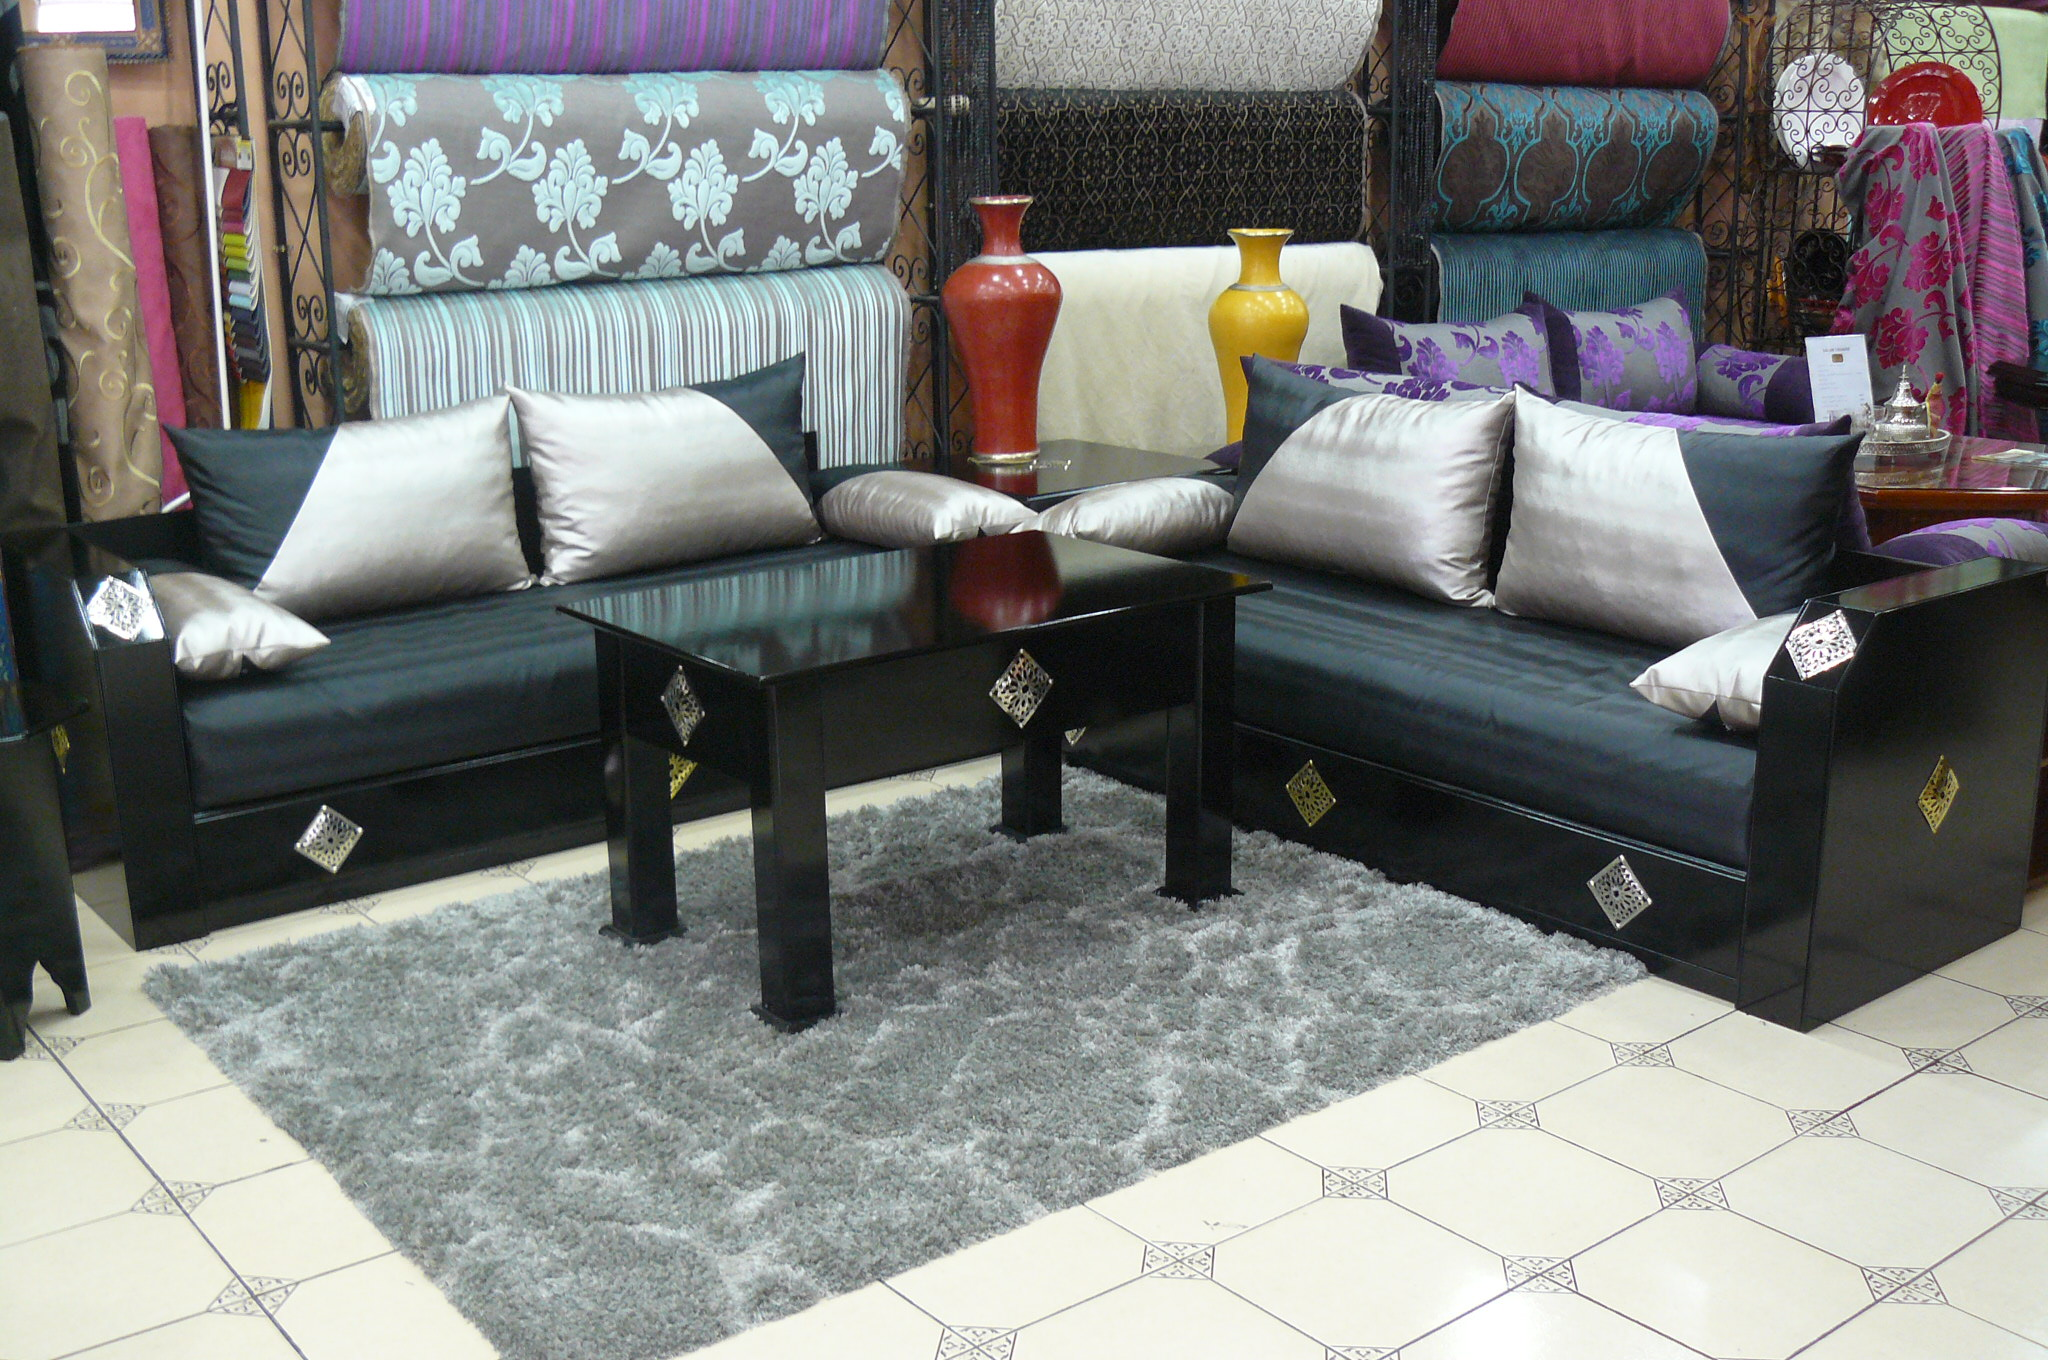 Salon marocain contemporain paris d co salon marocain for Deco salon noir gris blanc